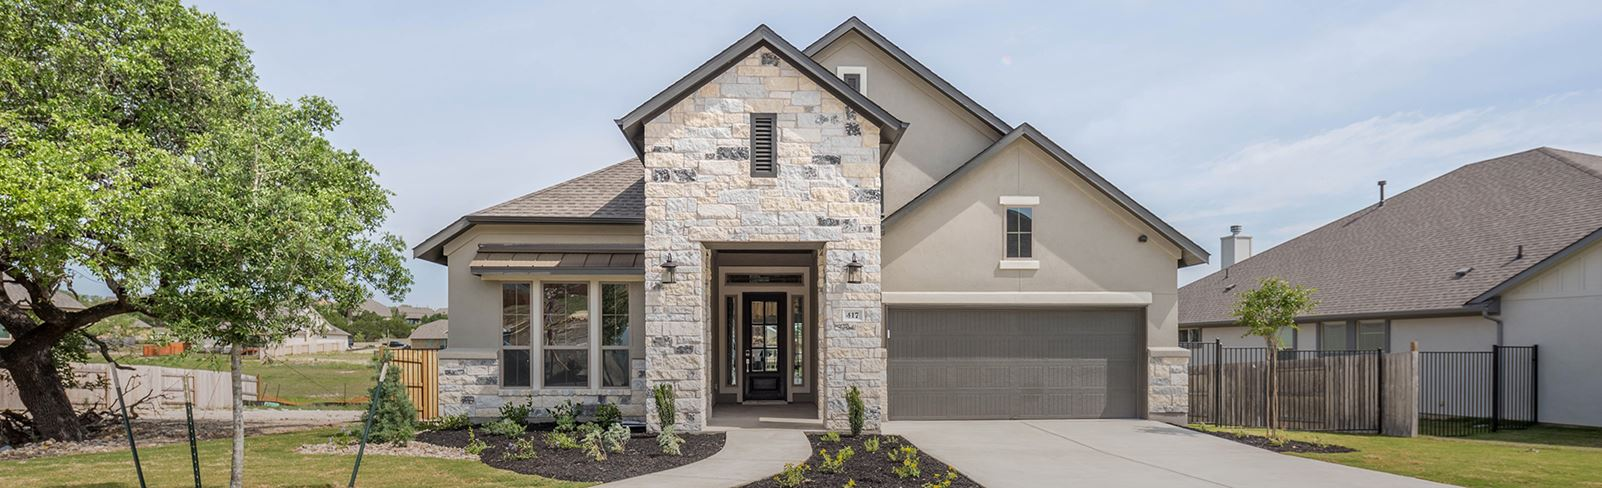 rancho-sienna-trendmaker-homes-plan-550f-quick-move-in.jpg